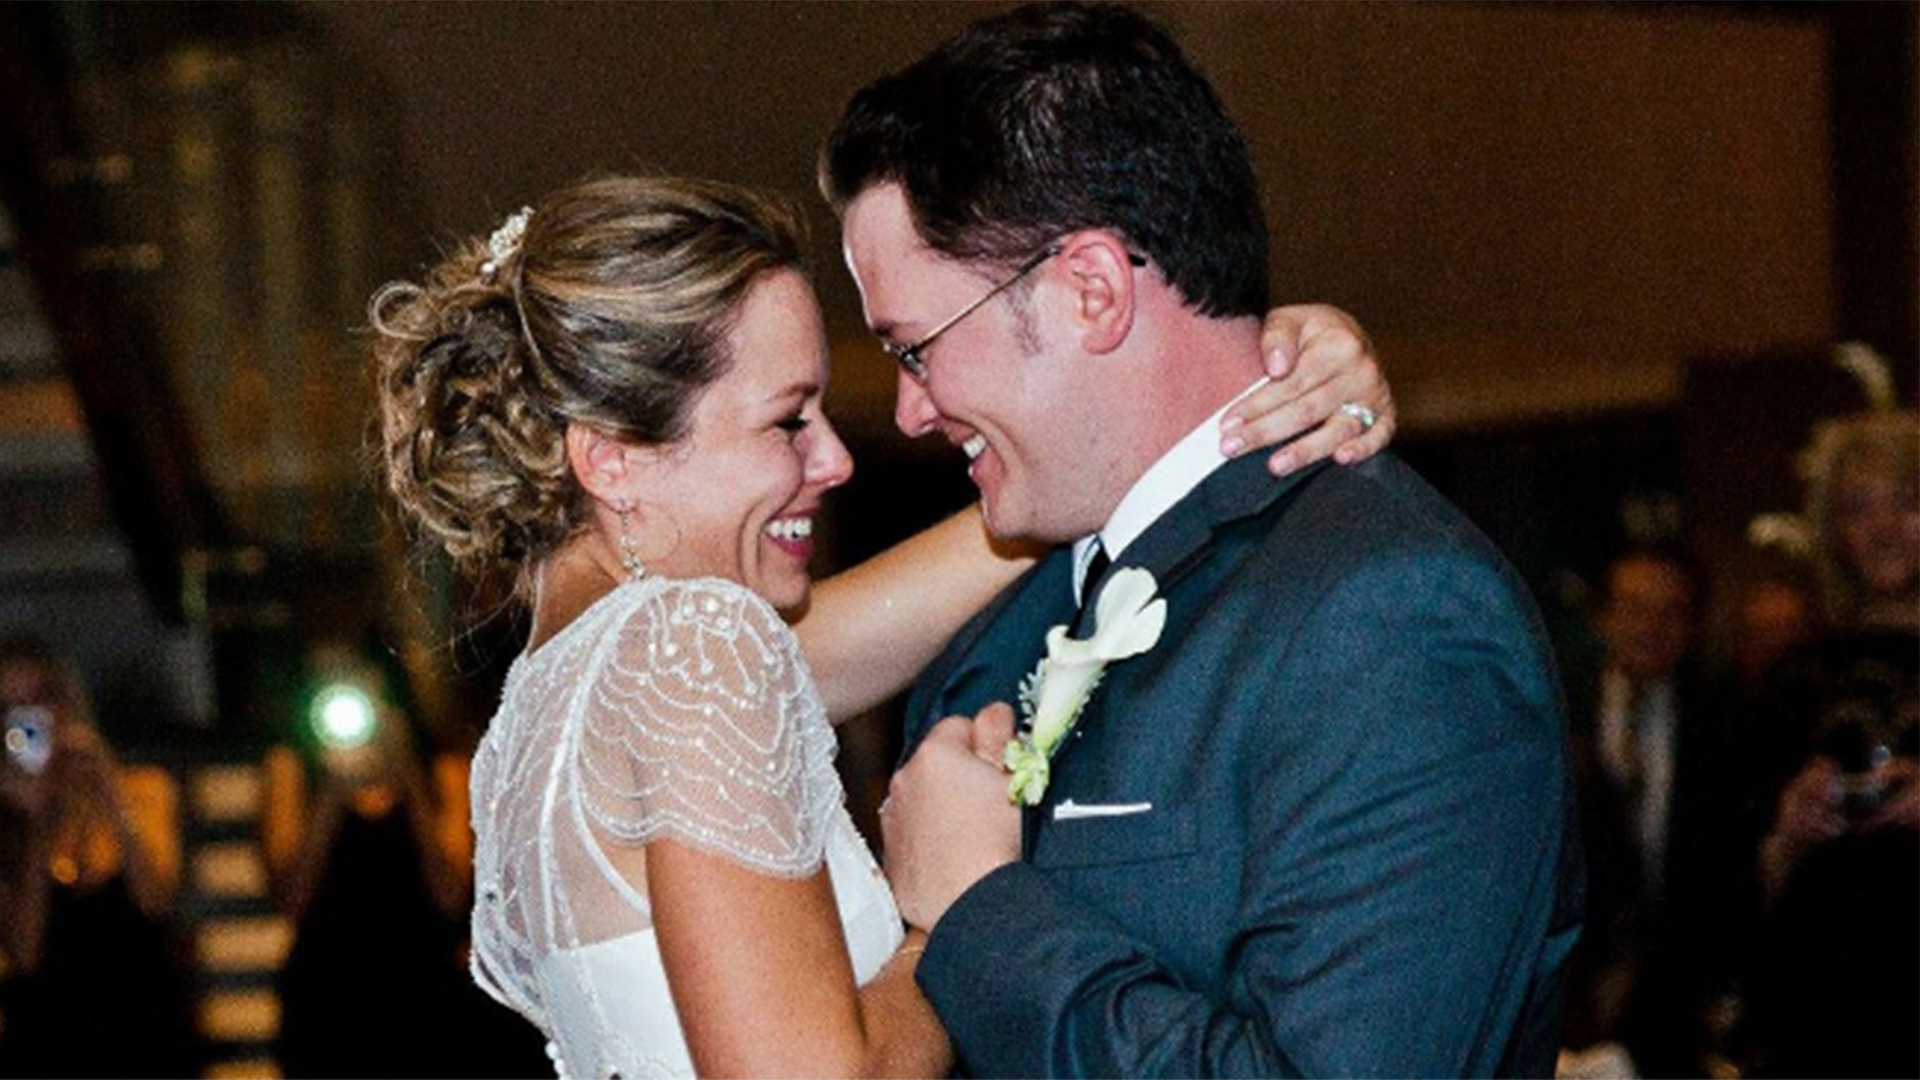 Dylan Dreyer Posts Sweet Throwback Photo For 5th Wedding Anniversary